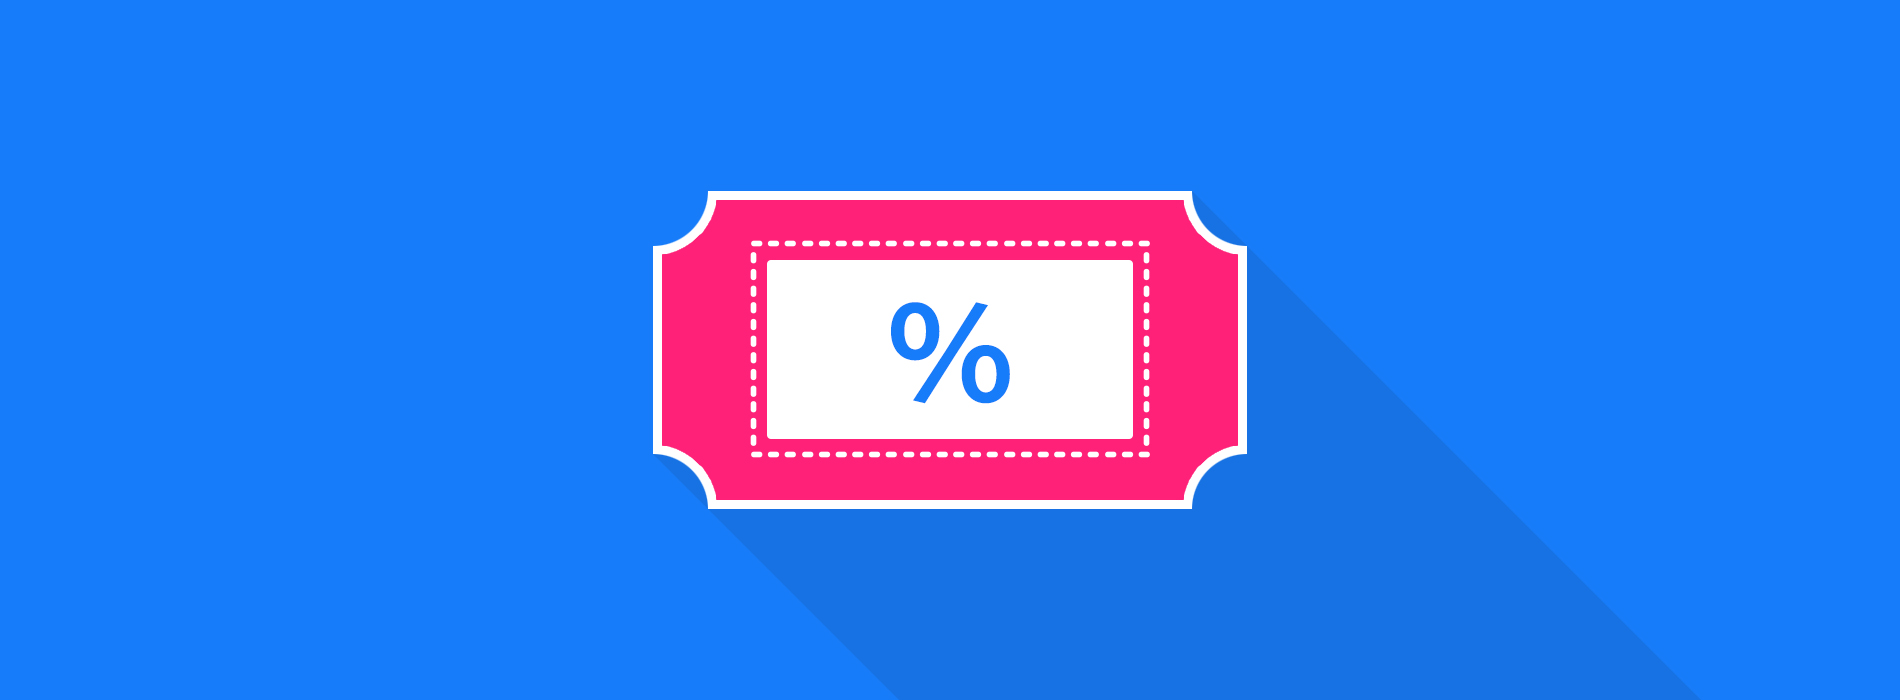 How Retailers Can Use Discounting Without Harming Their Brand